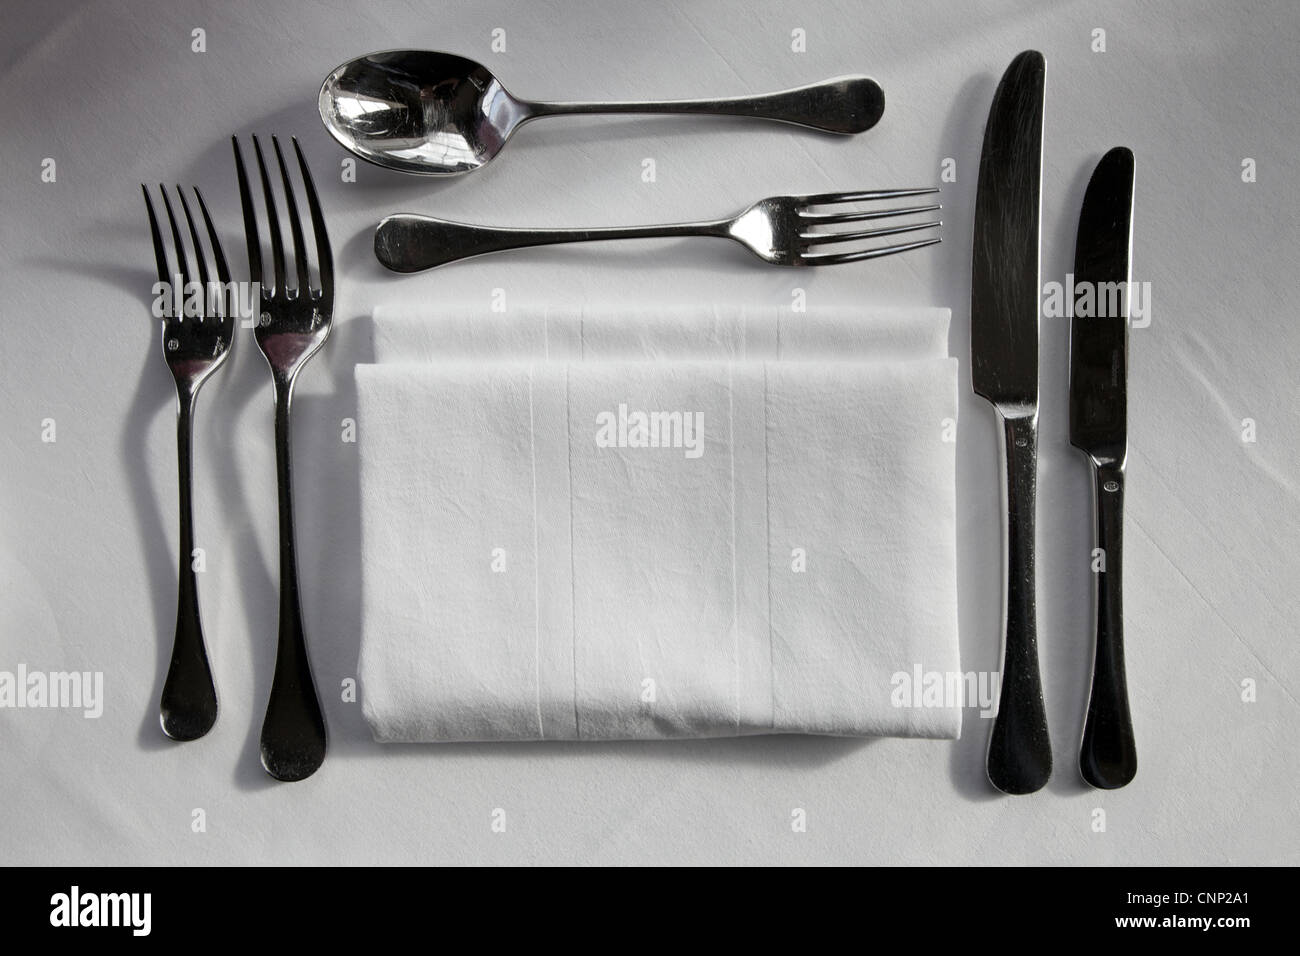 Silver cutlery set out for dinner service. - Stock Image